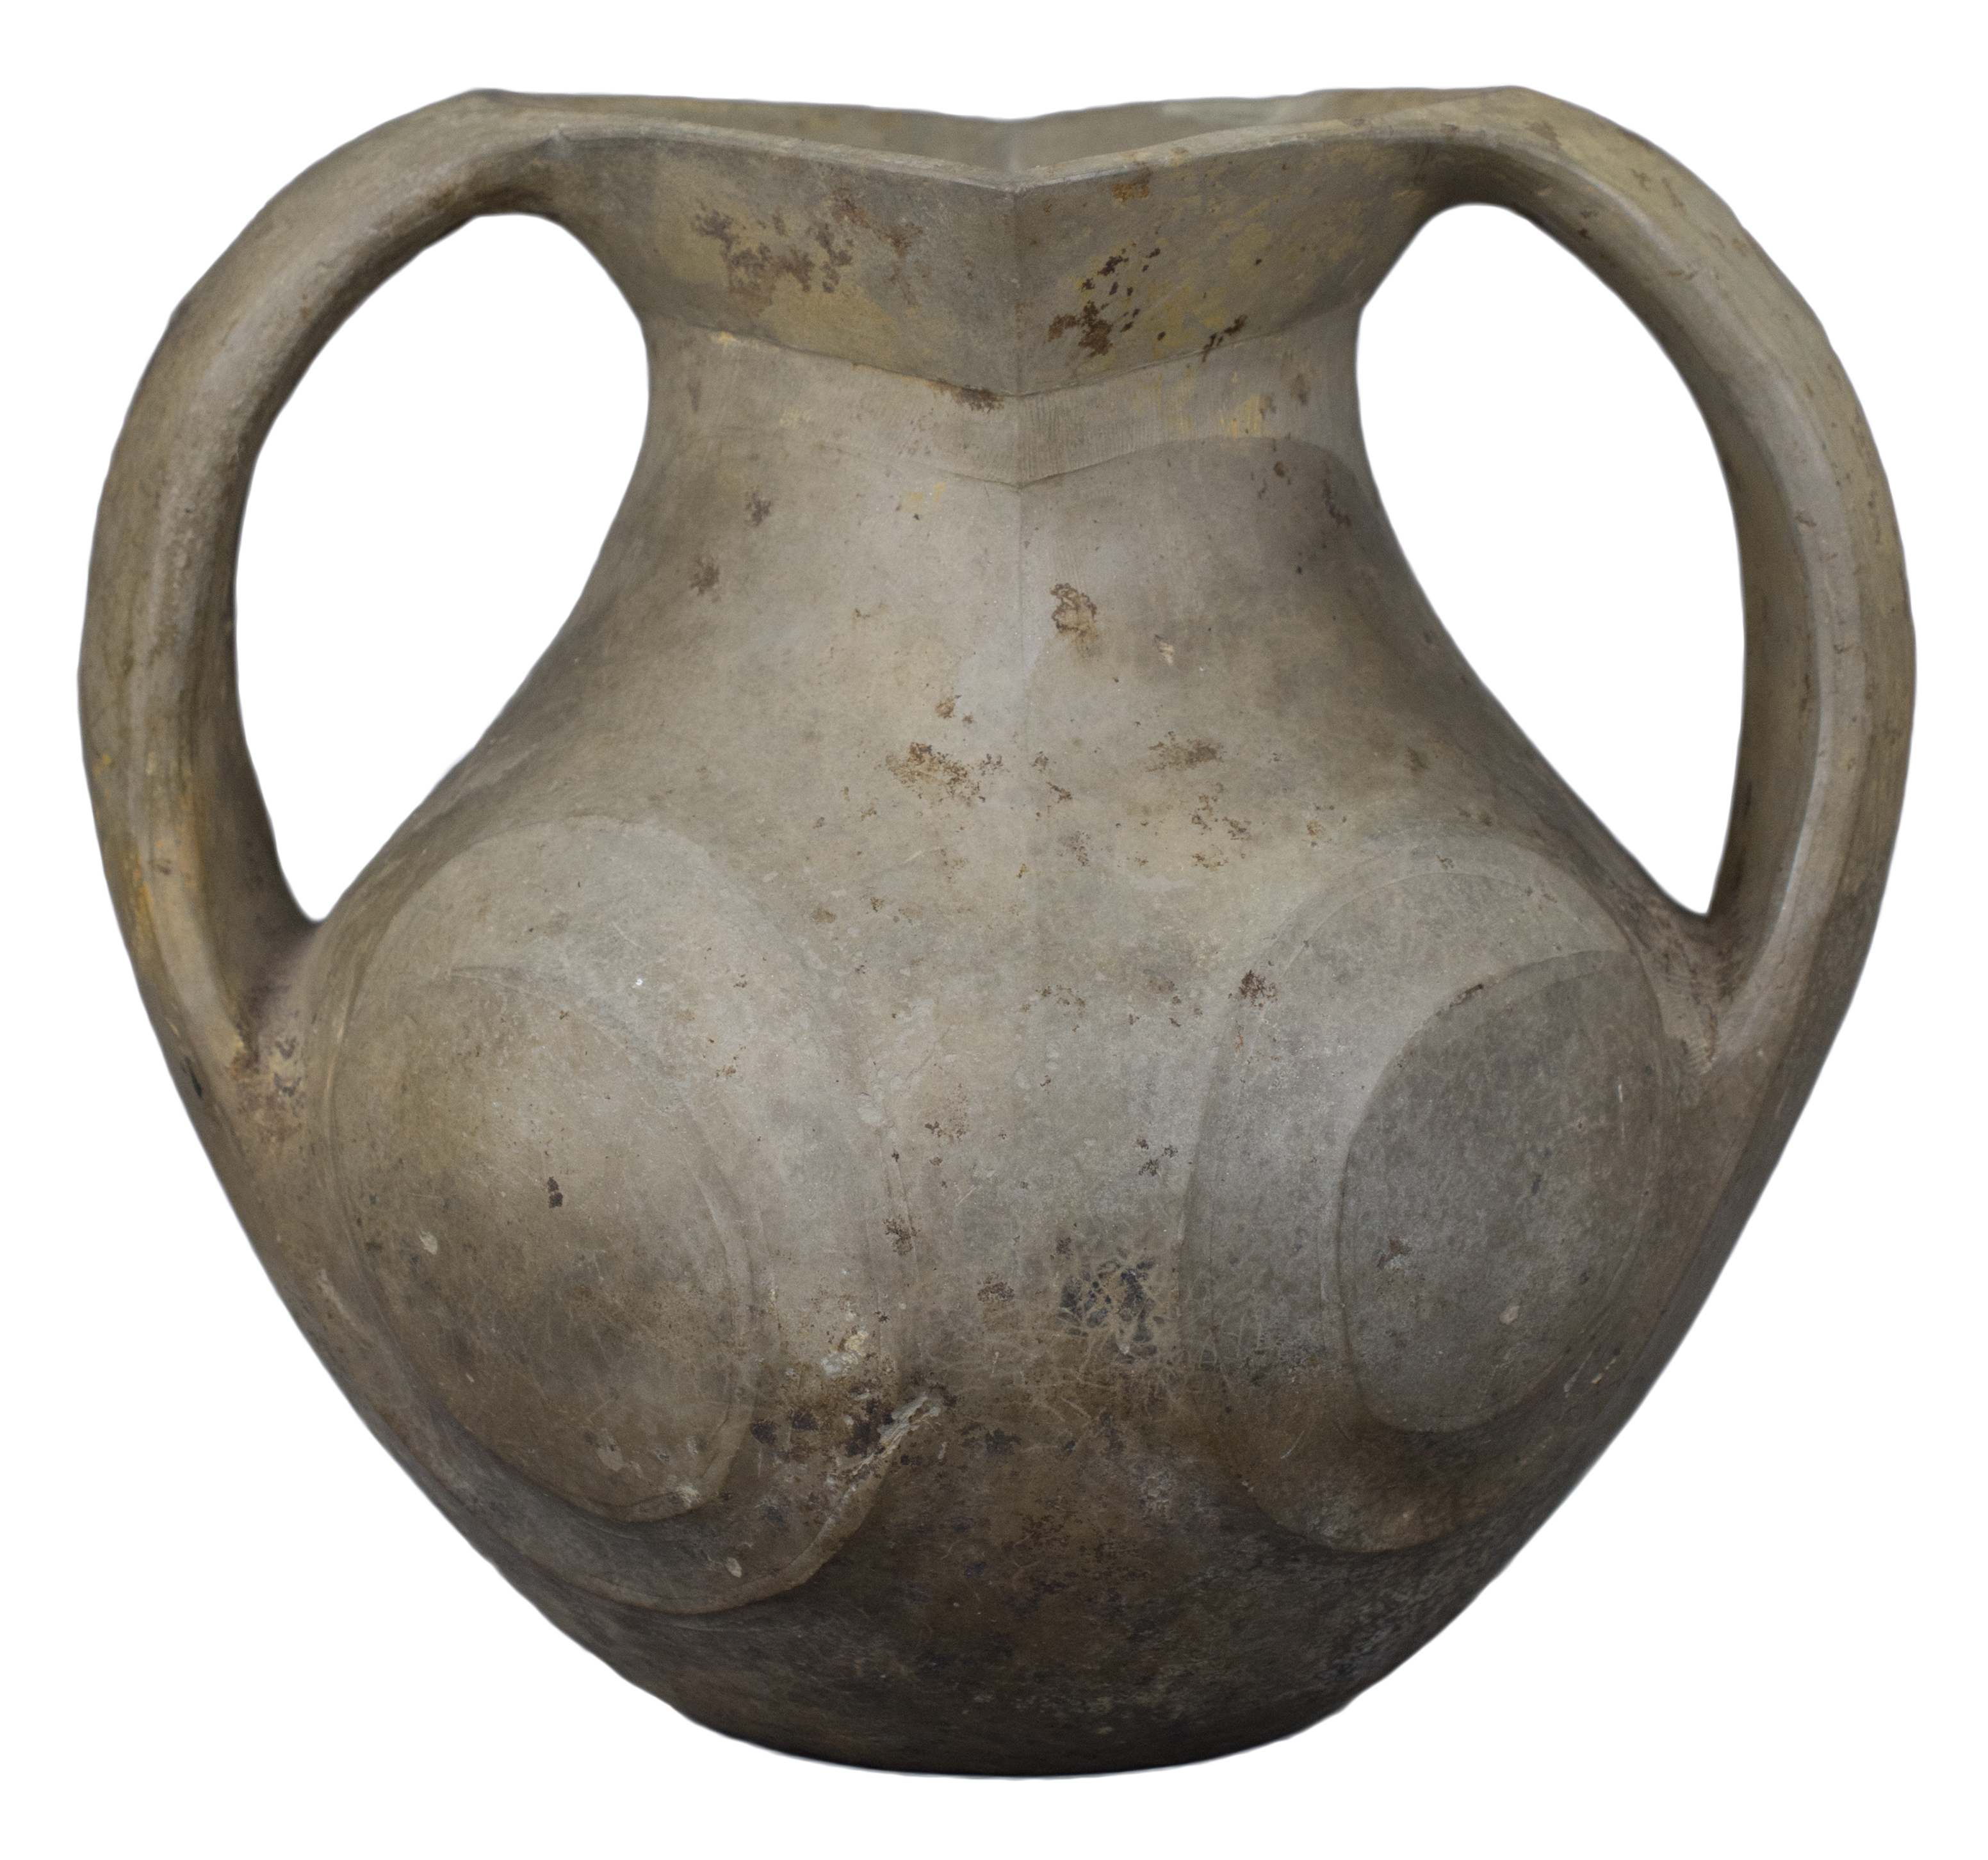 Lot 50 - A Chinese Han Dynasty Twin-Handled Pottery Amphora